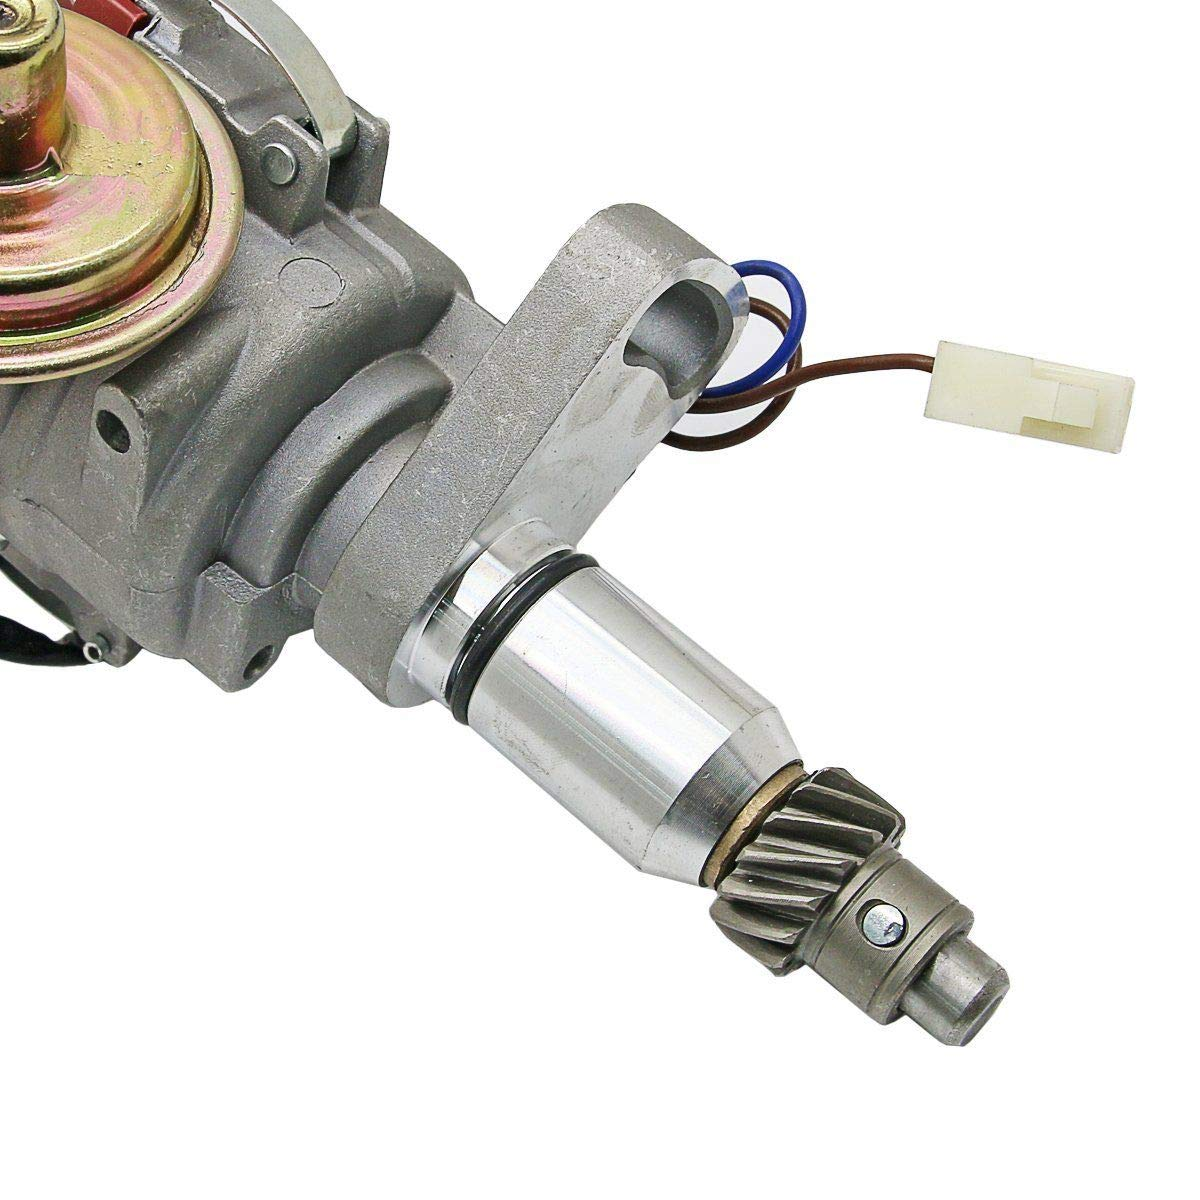 Electronic Ignition Distributor Fit For Suzuki Jimny Samurai Sierra SJ410 SJ413 JA51 1.3L G13A